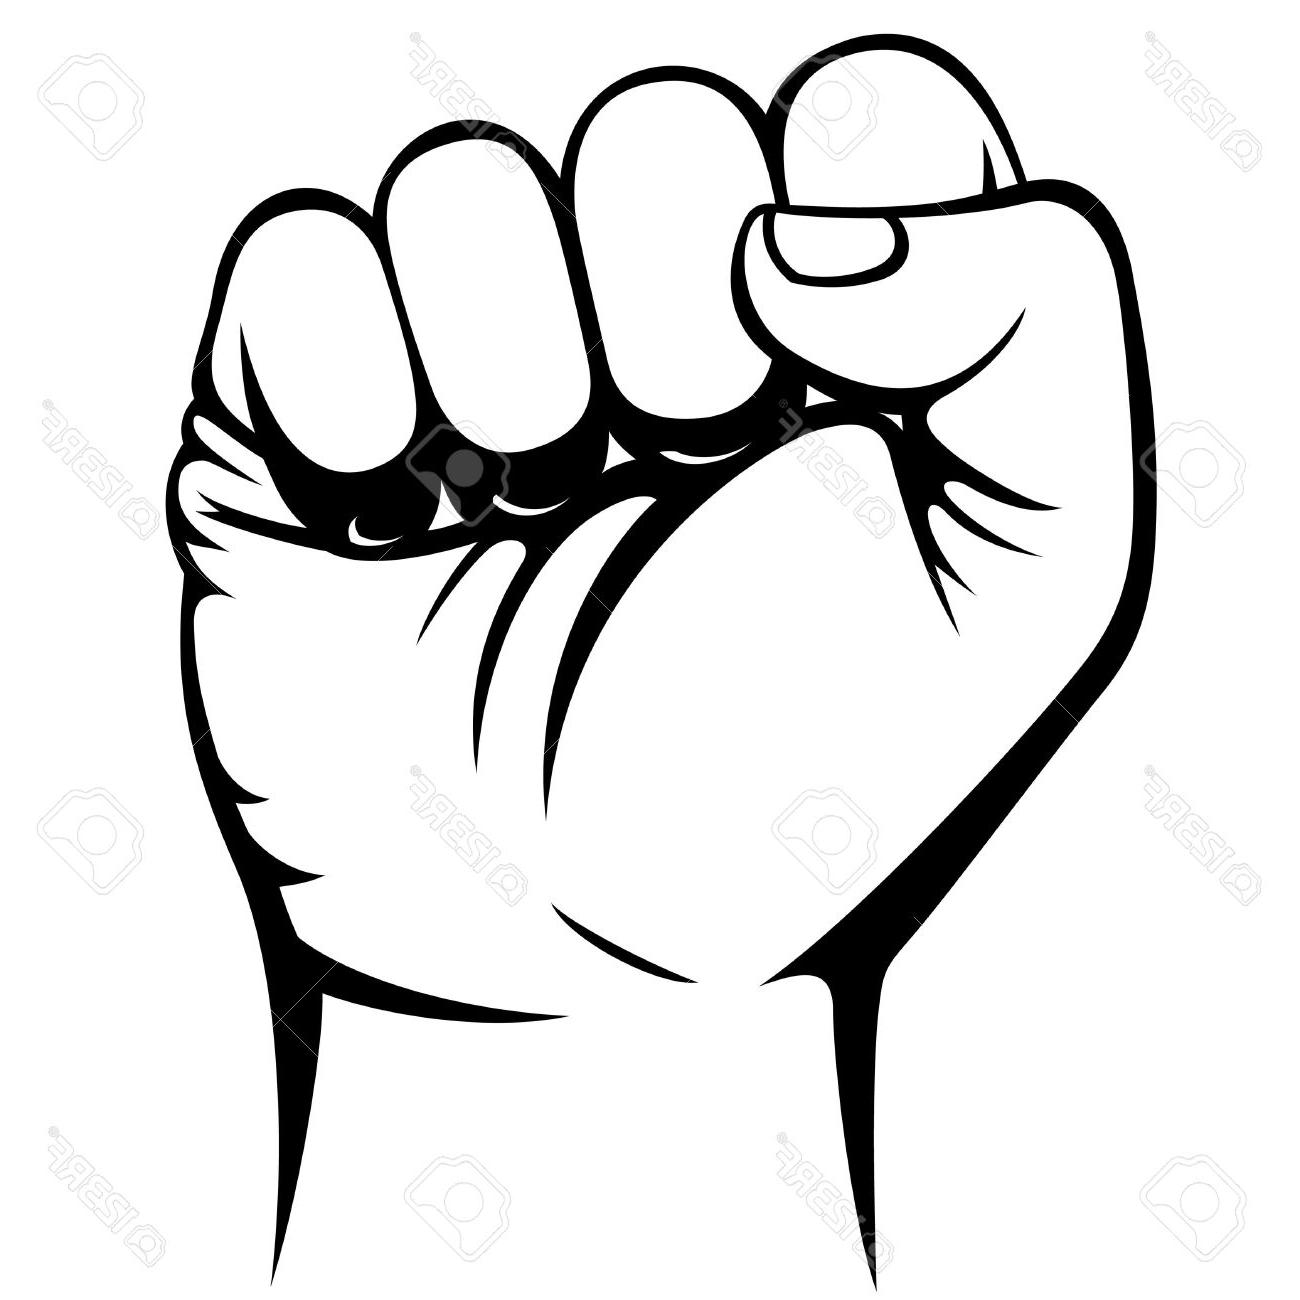 Download High Quality hand clipart fist Transparent PNG.